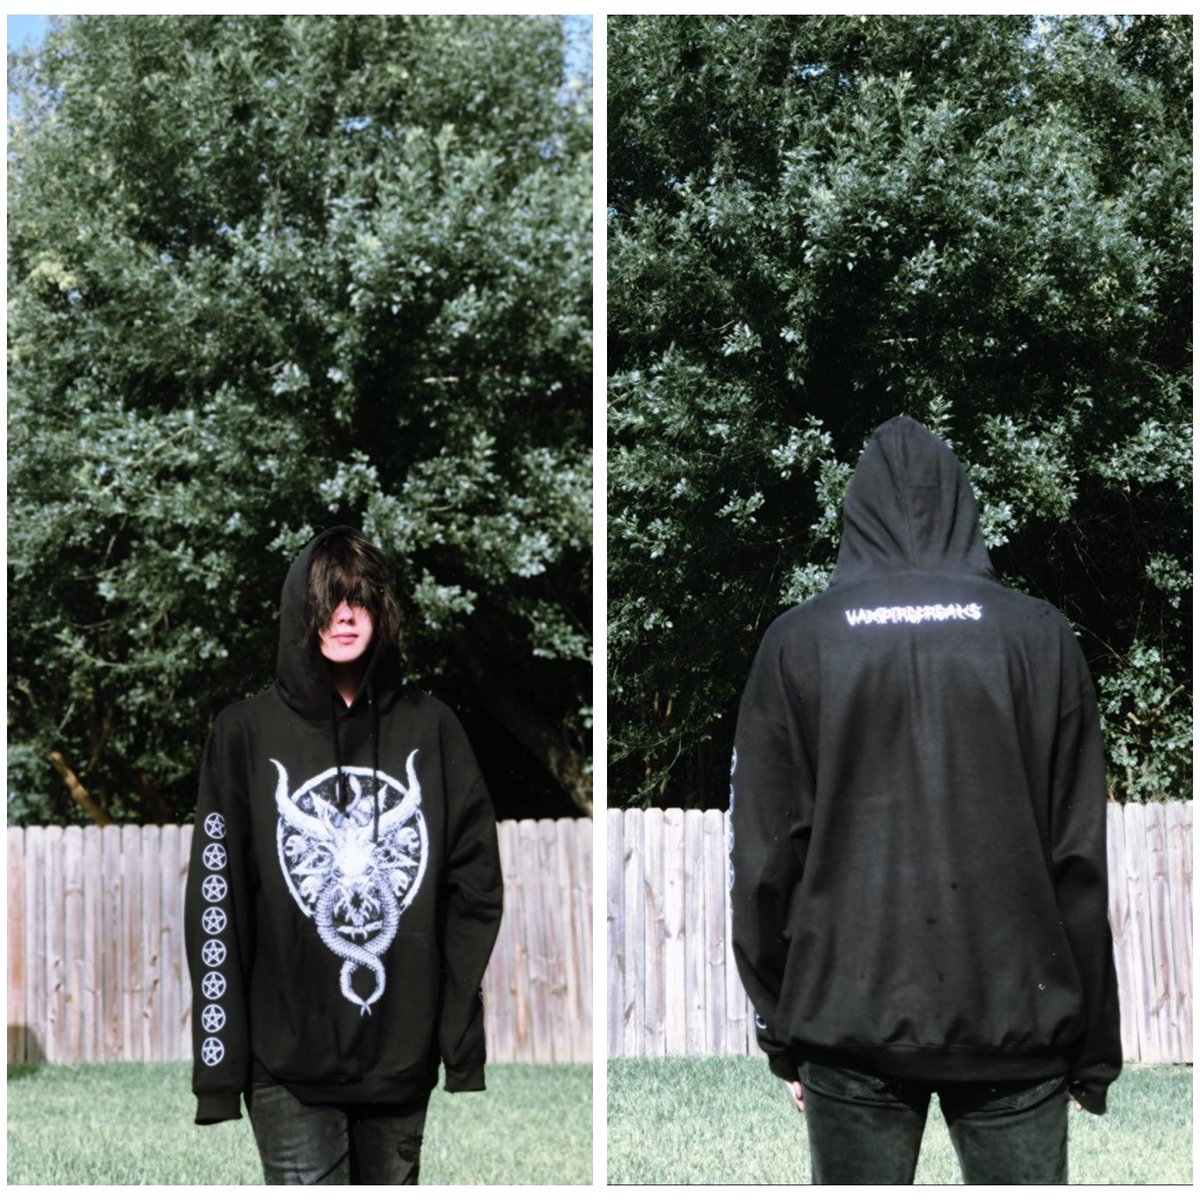 Doesn't @gavinhugsgremlins look killer in our Destrukture Beast of Belial Pullover Hoodie!  Available in the store! Link in bio  #vampirefreaks #alternativefashion #alternative #goth #gothic #scene #emo #alternativemusic #alternativemodel  #gothguy #vampirefreaksstorepic.twitter.com/kZpDDDTemv